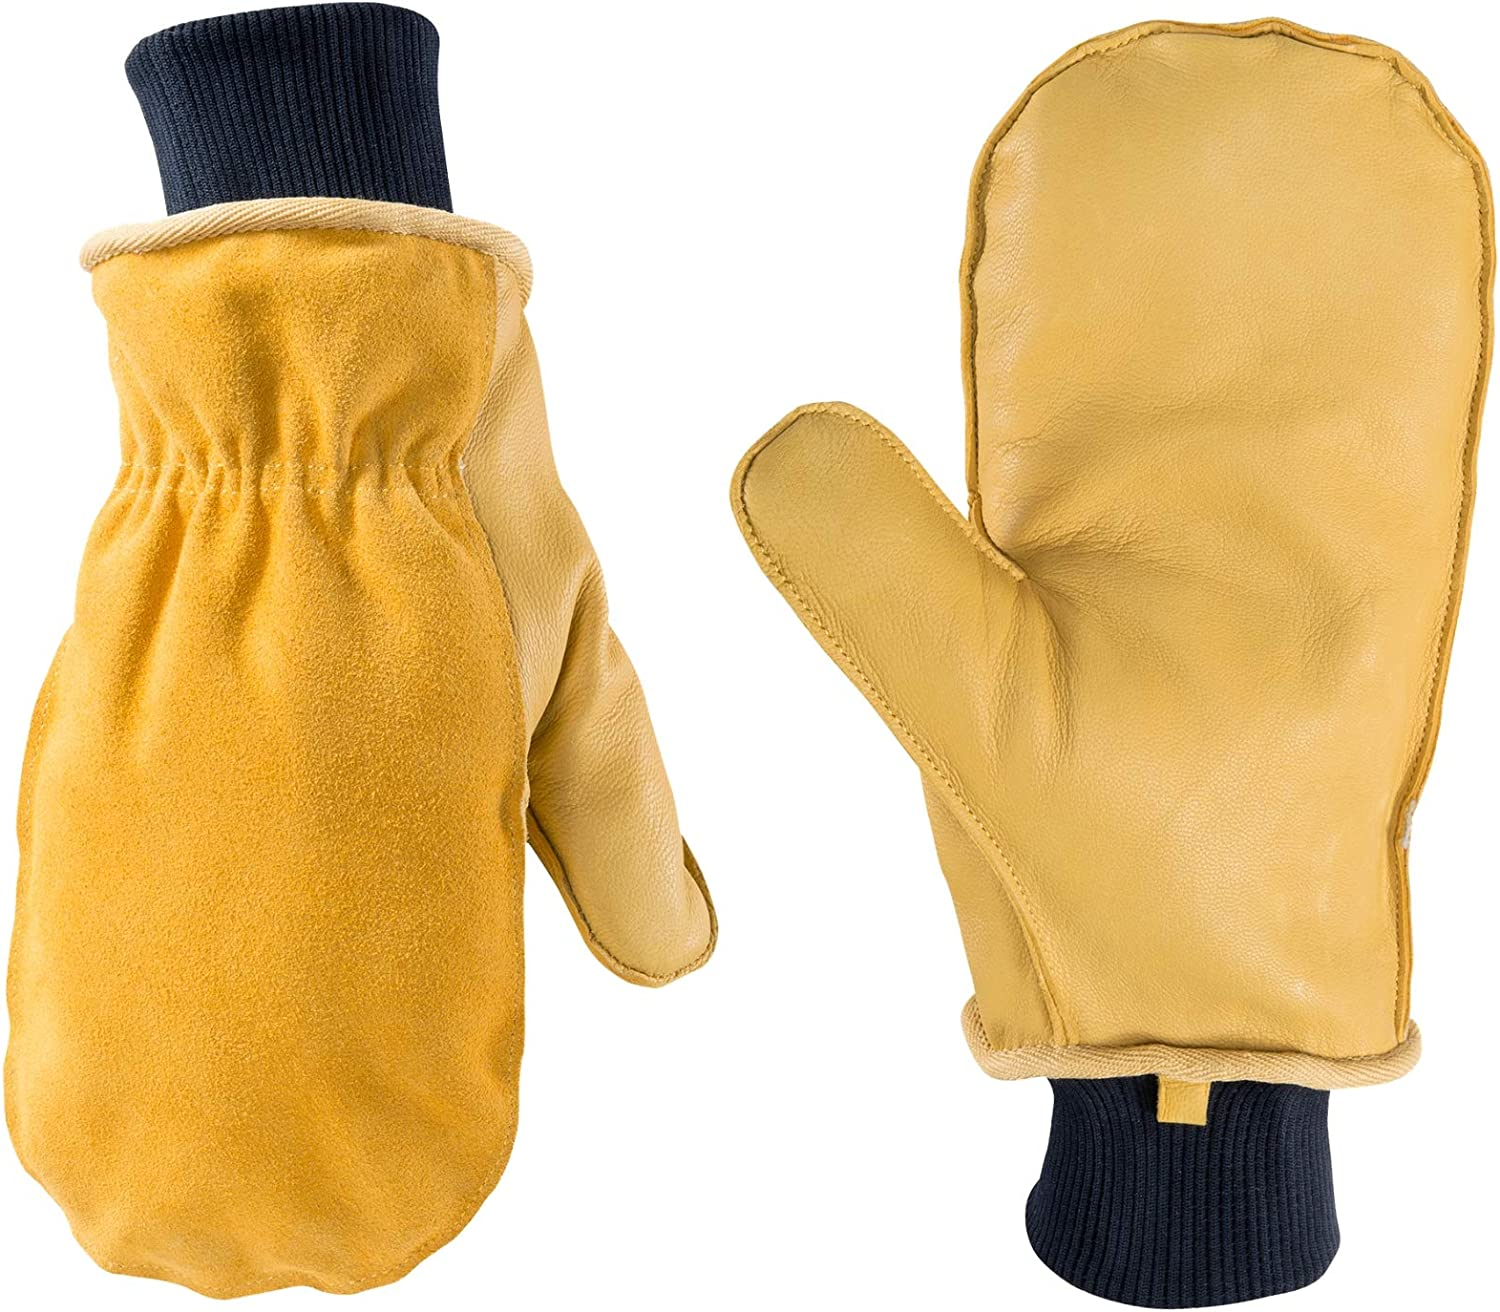 Men's Winter Leather Mitten with Glove Liner, Extra Large (Wells Lamont 1430)